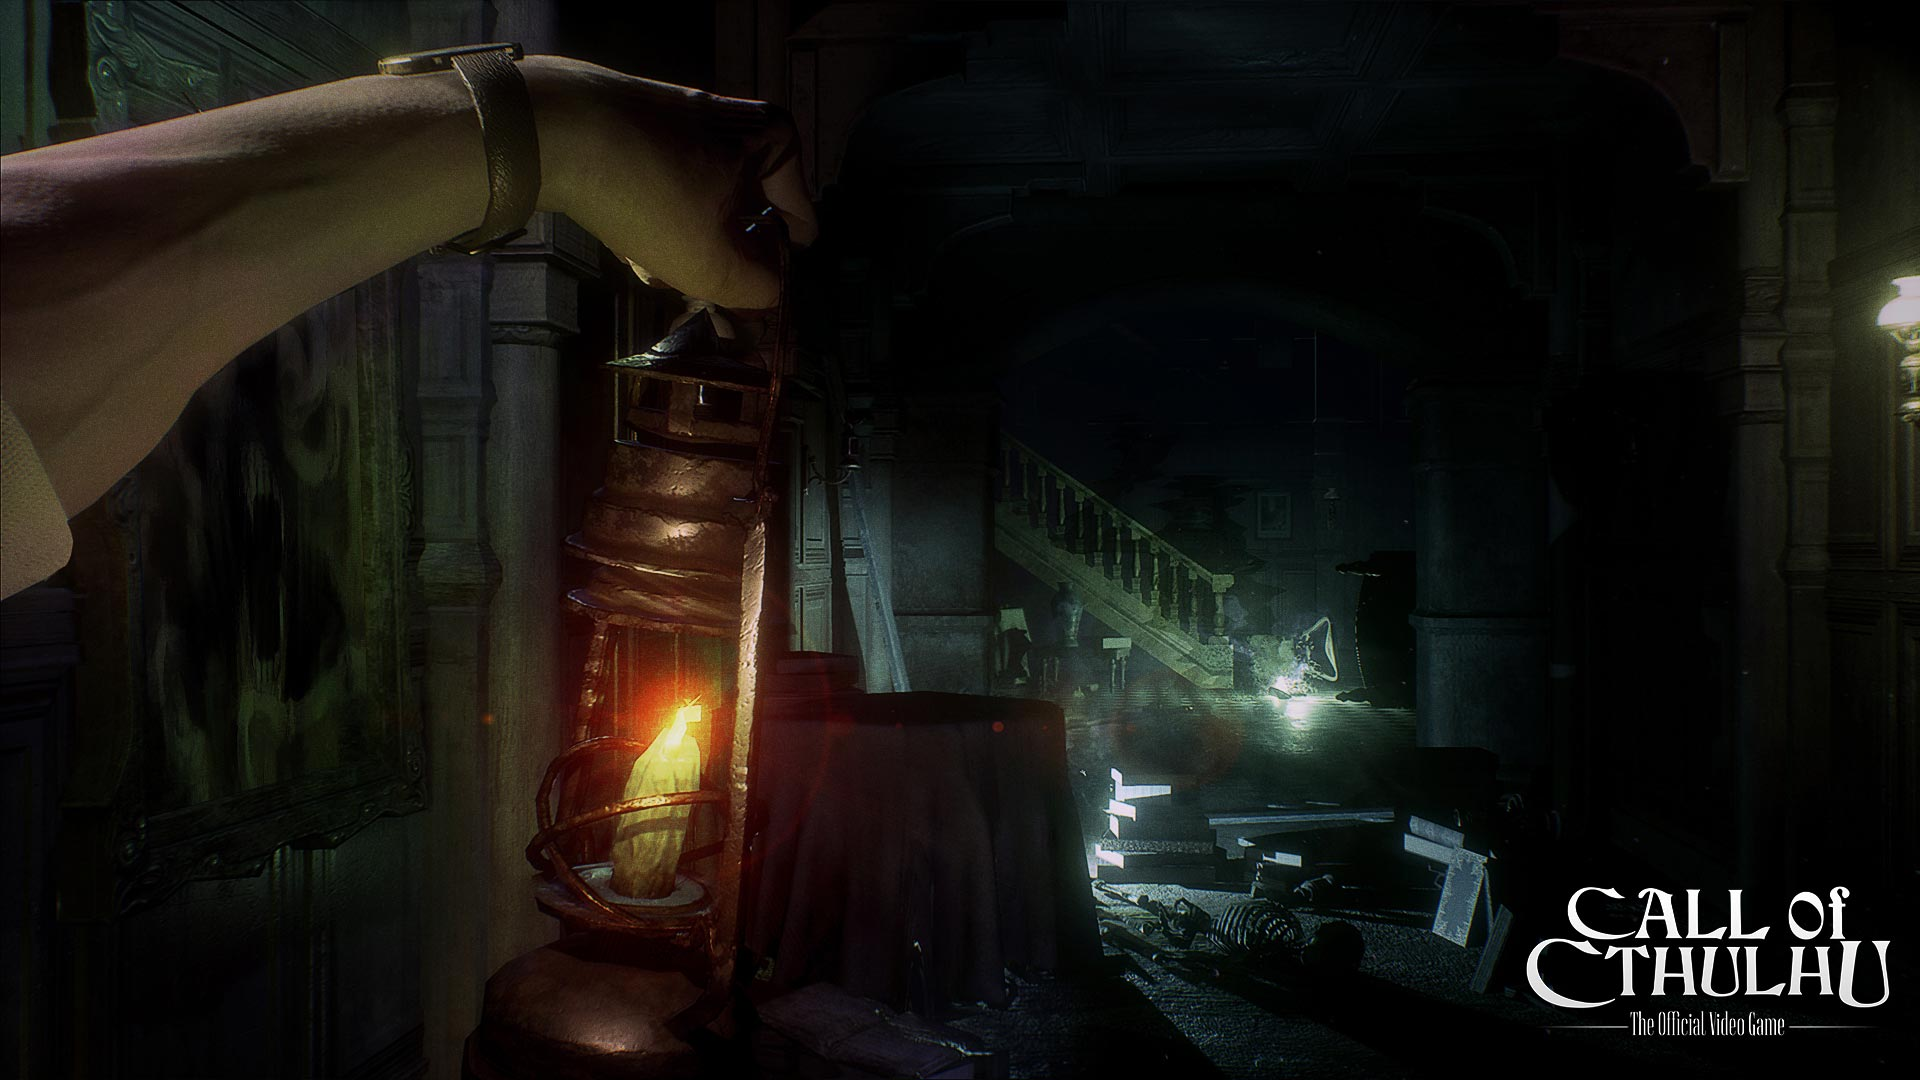 Call of Cthulhu takes place from a first-person-view perspective